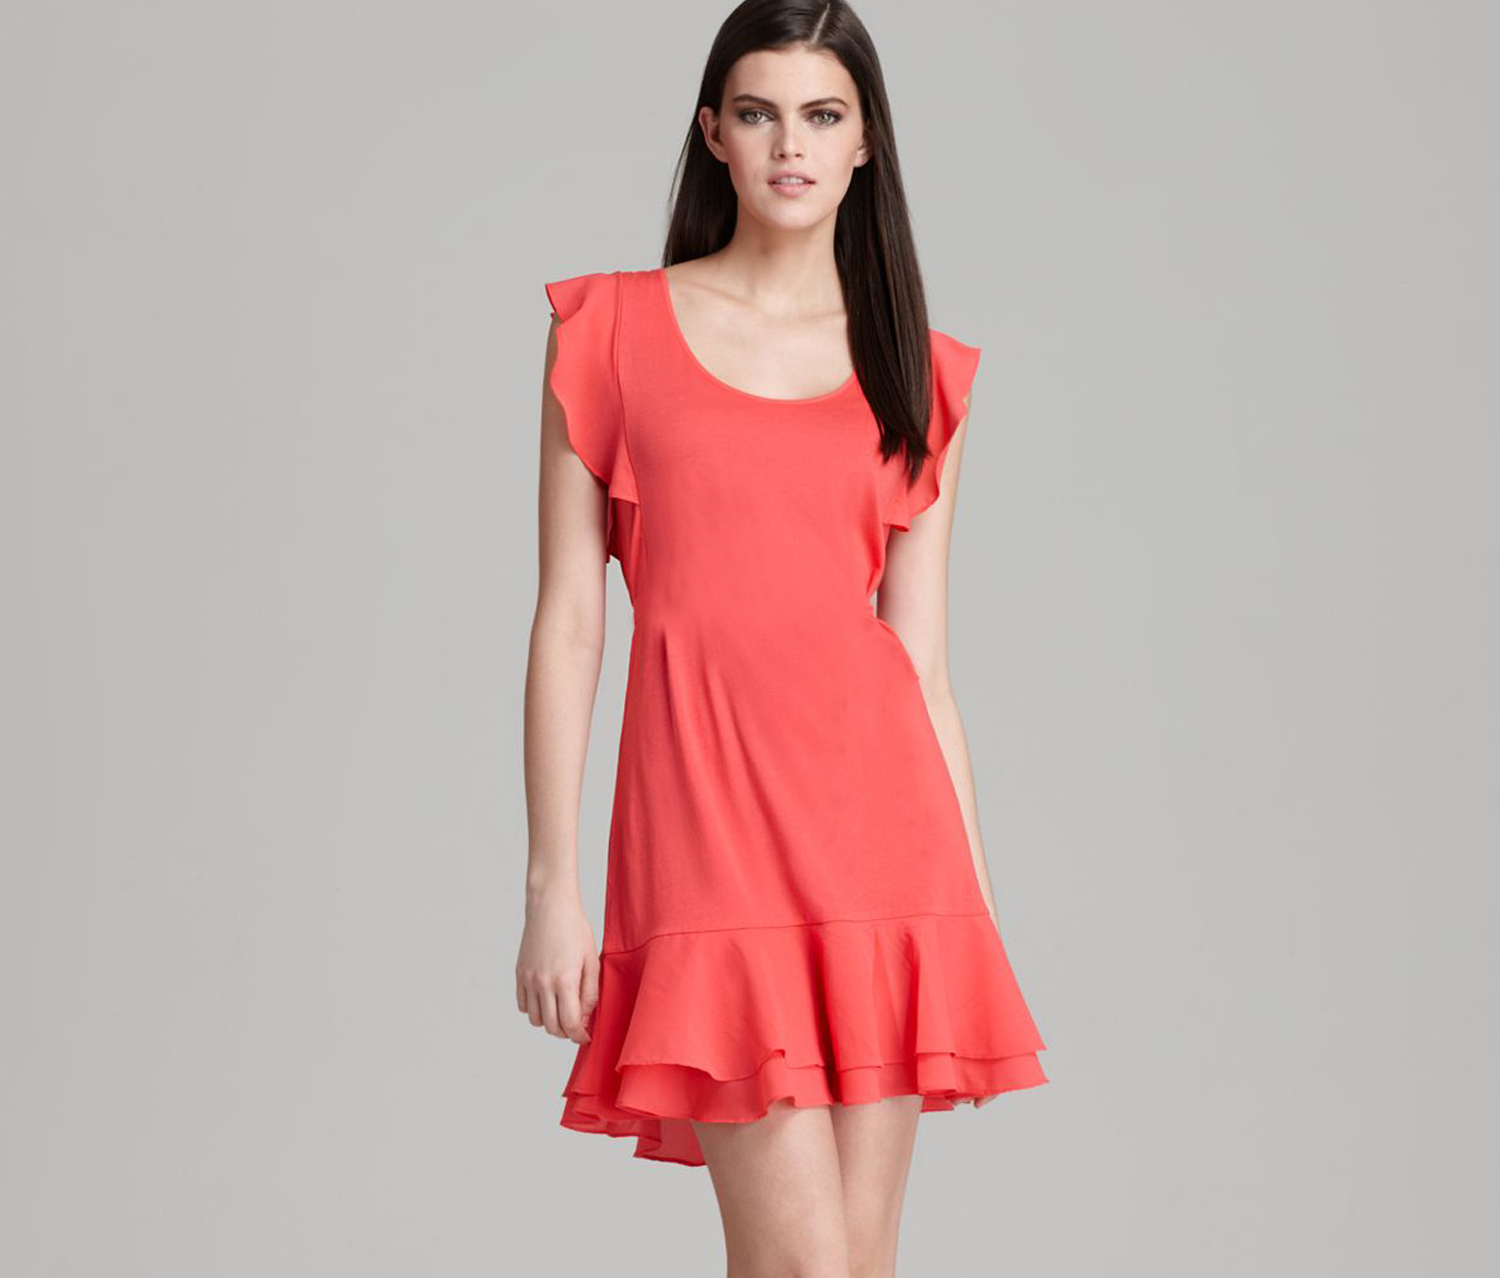 womens 71qh9 dress coral pink brands for less